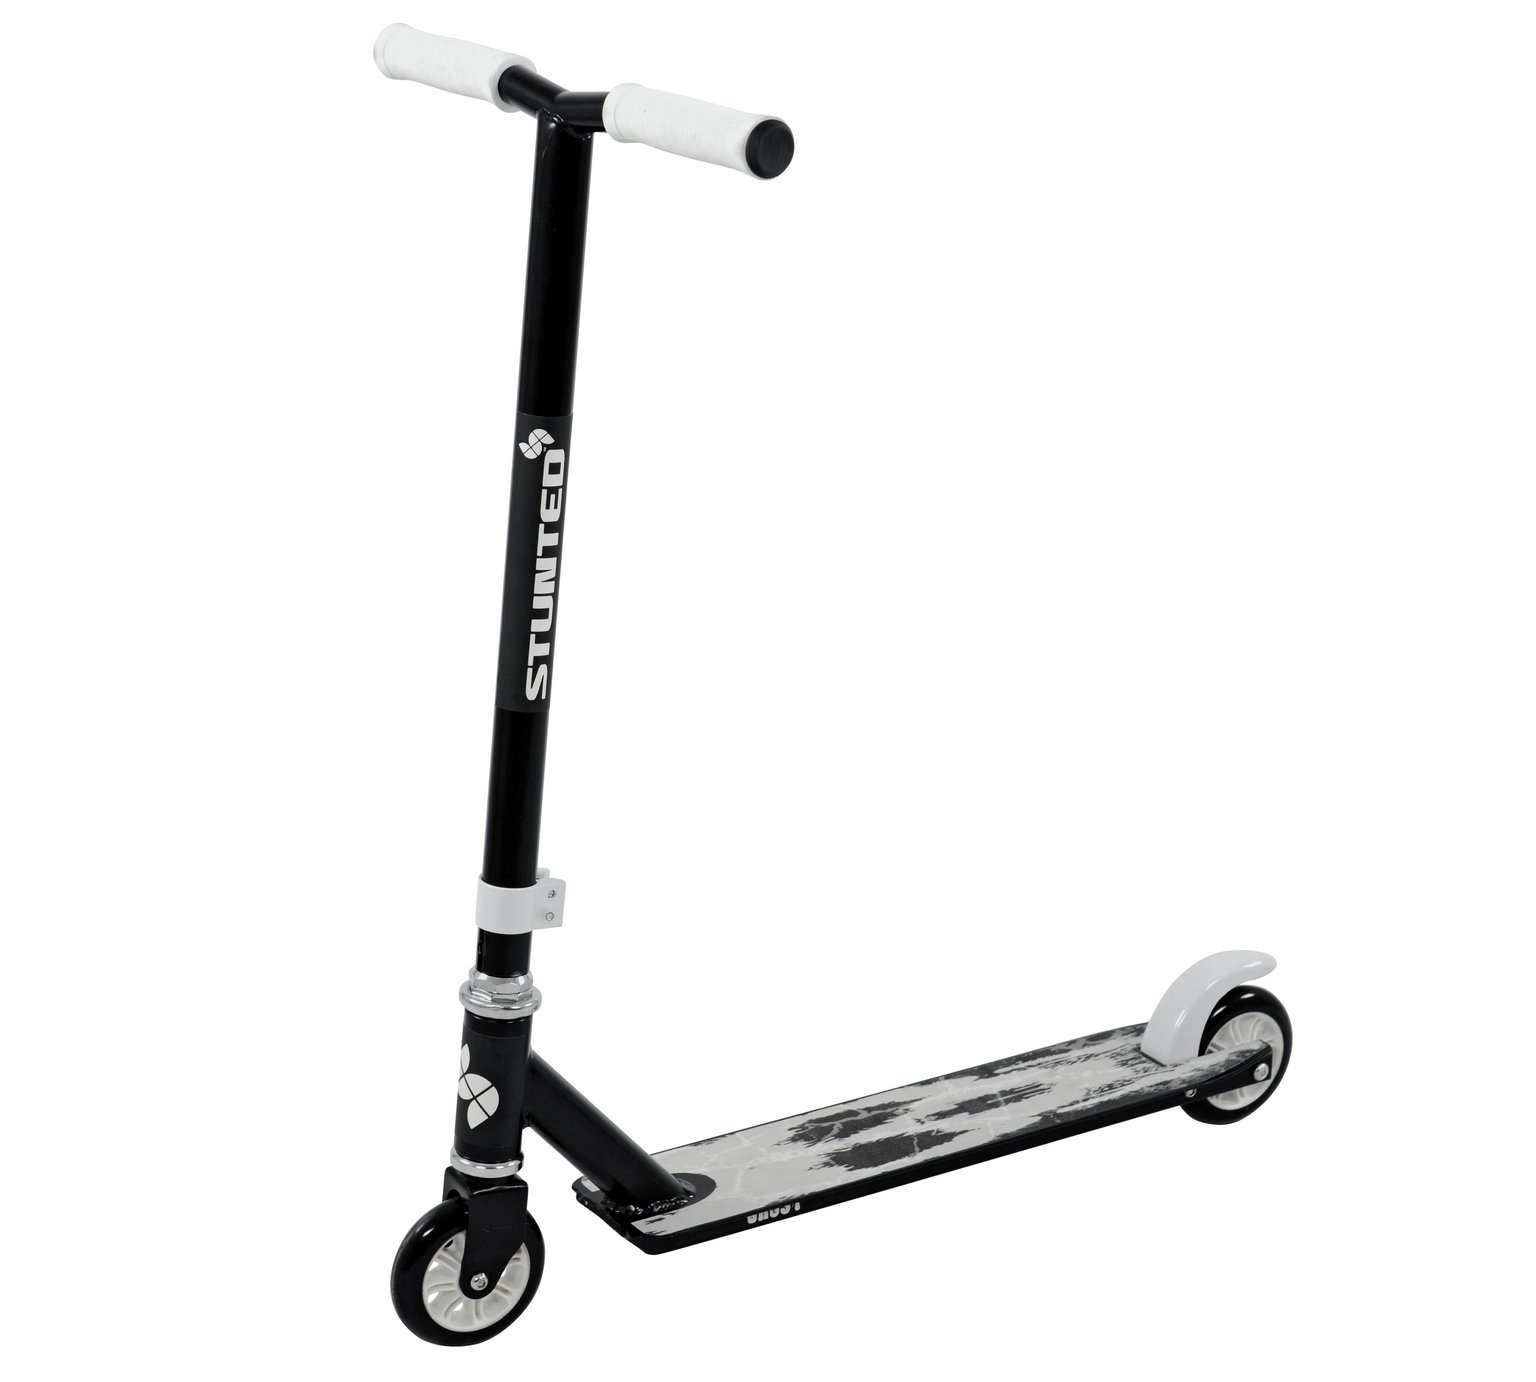 Buy Stunted Ghost Stunt Scooter Scooters Argos